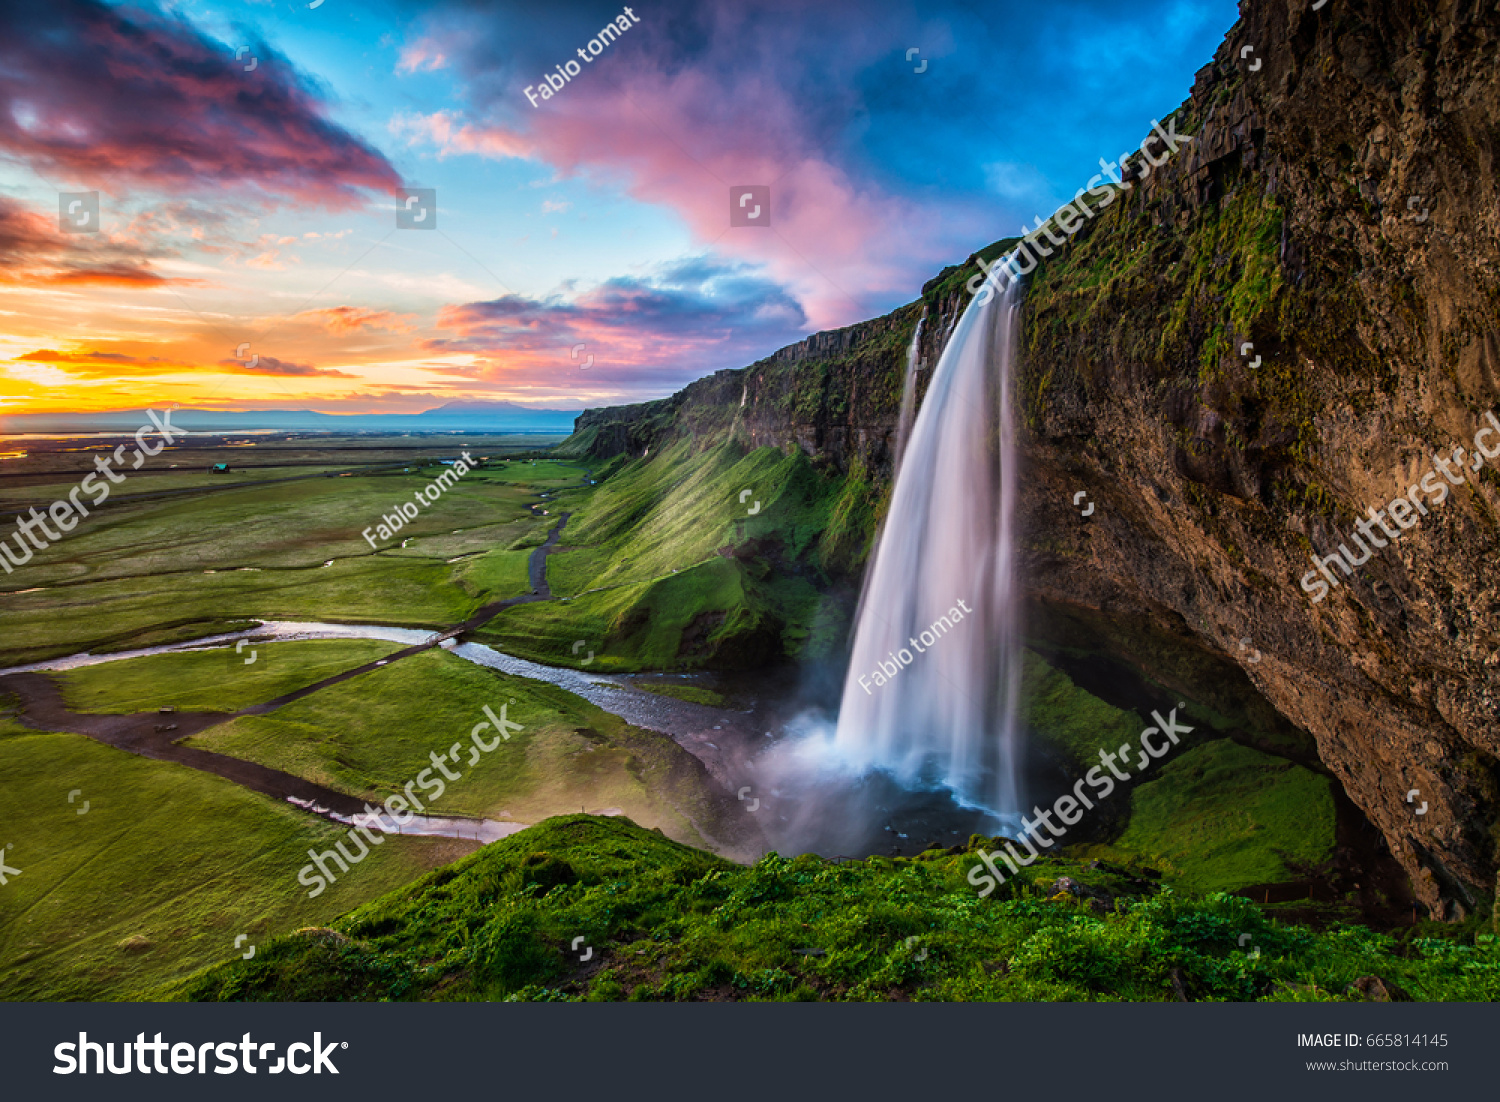 Seljalandsfoss - Seljalandsfoss is located in the South Region in Iceland right by Route 1. One of the interesting things about this waterfall is that visitors can walk behind it into a small cave.   #665814145